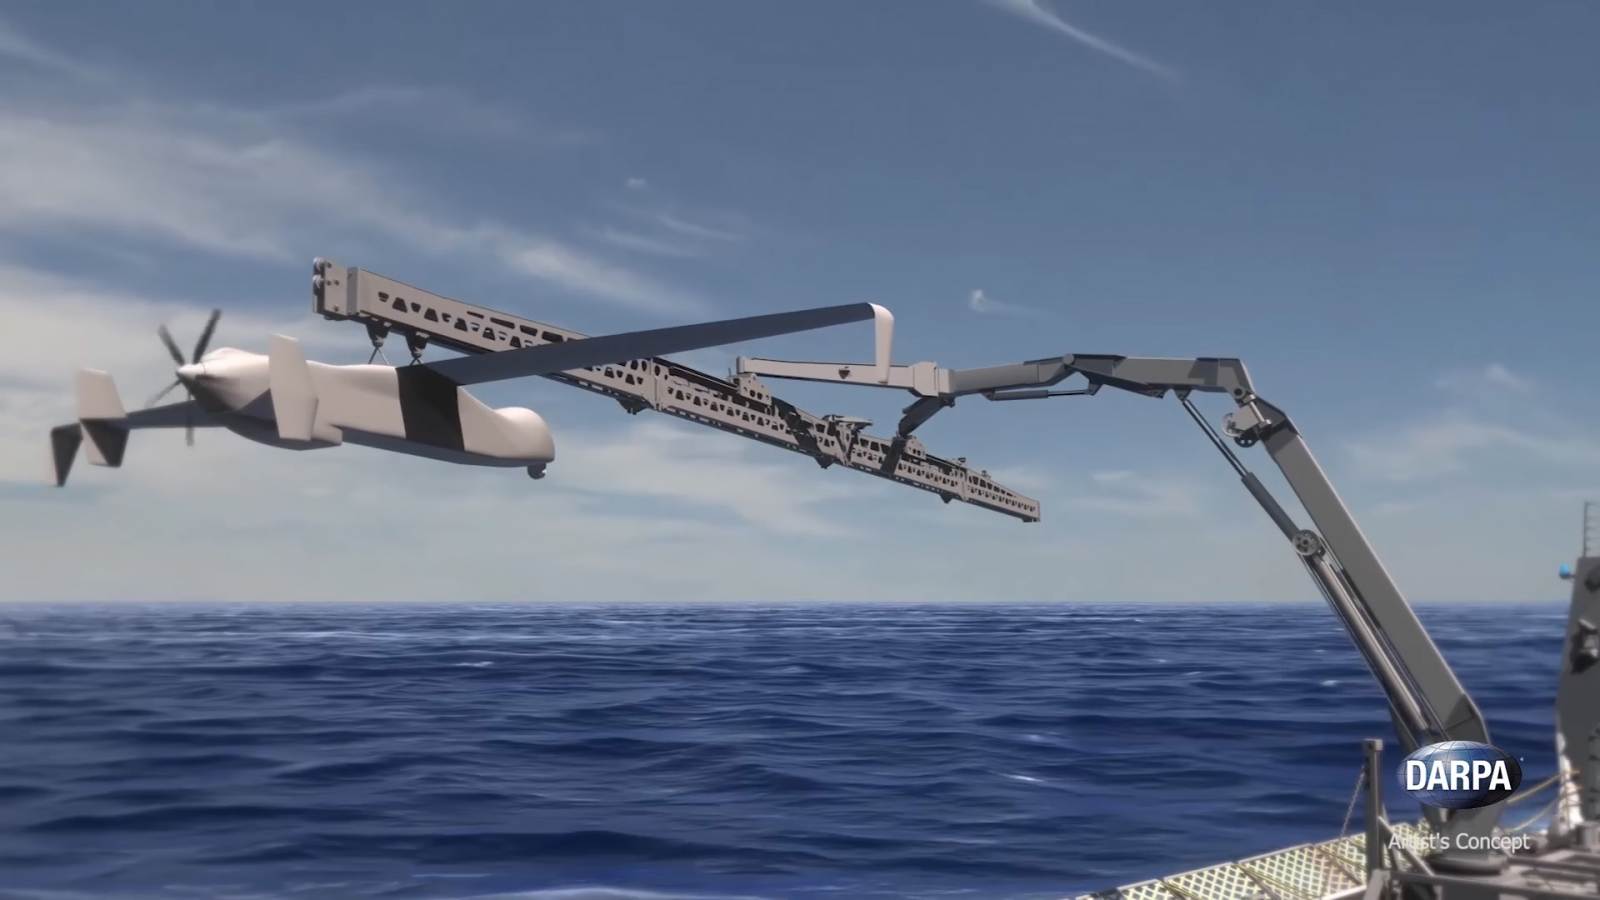 Darpa's SideArm drone launch and retrieval system